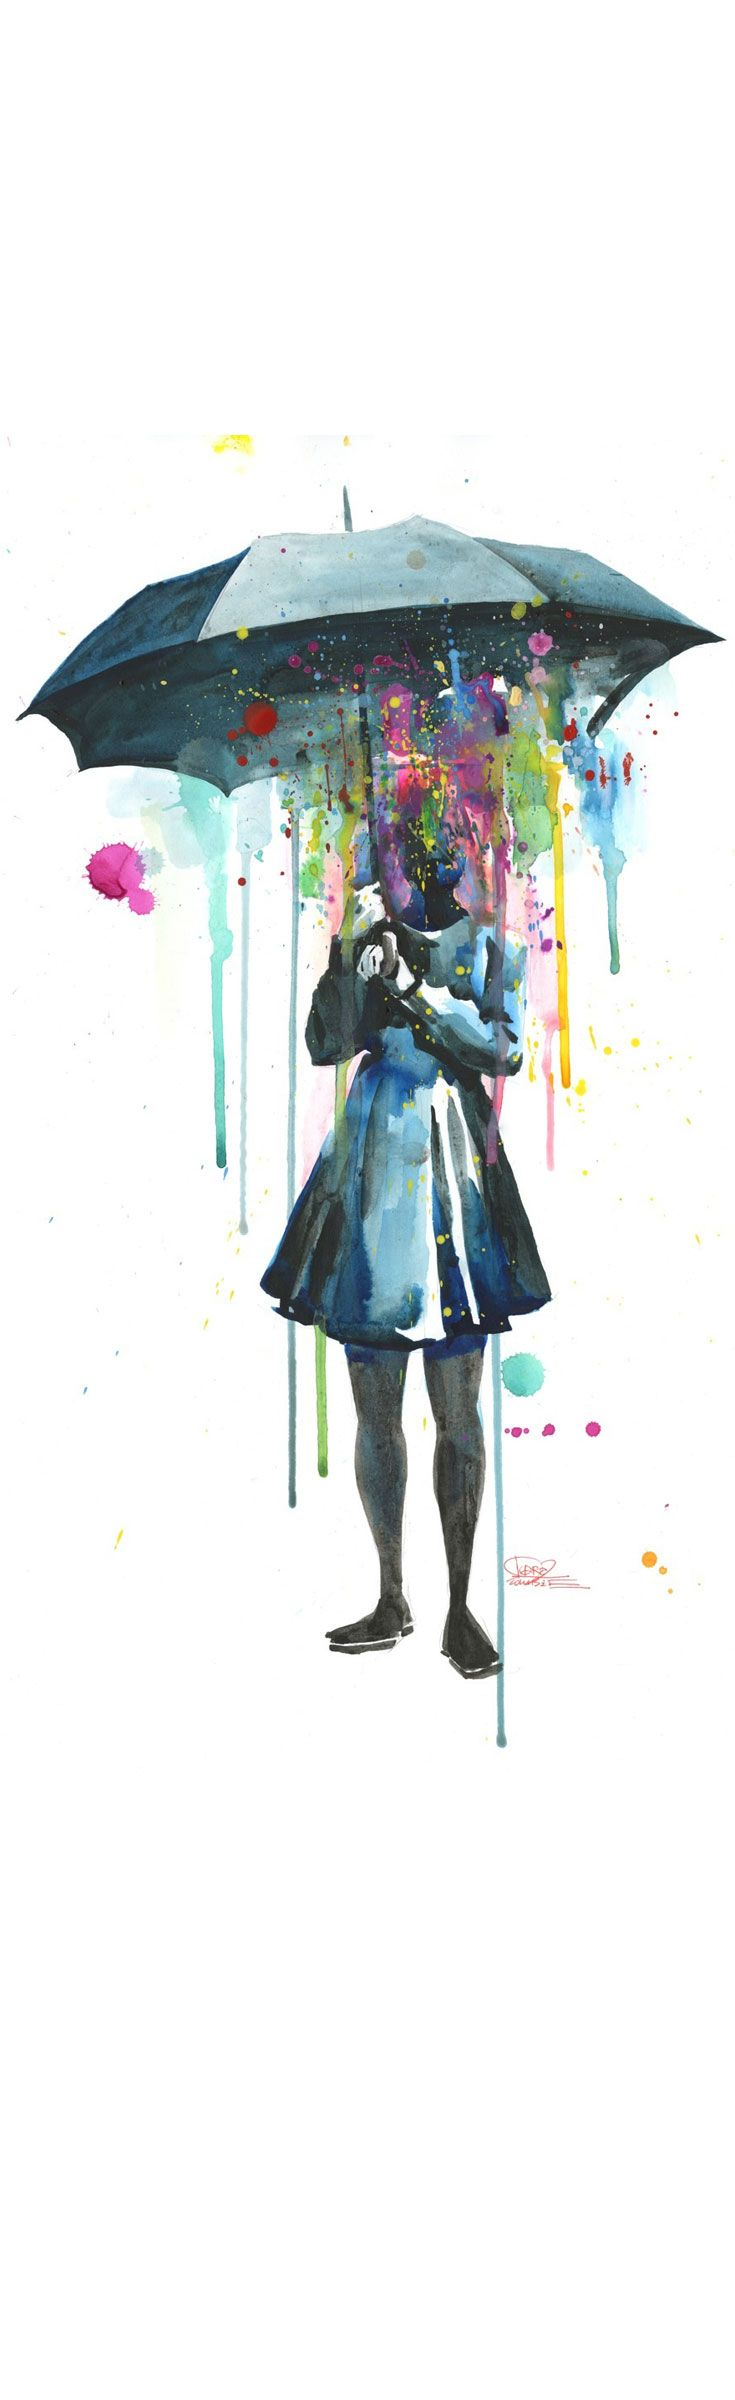 'Rainy' by Lora Zombie - Available in a variety of fine art print formats.  For more info and to purchase, visit Eyes On Walls:  http://www.eyesonwalls.com/collections/all/rainy?utm_source=pinterest&utm_medium=ads&utm_content=Rainy&utm_campaign=Urban%20Art